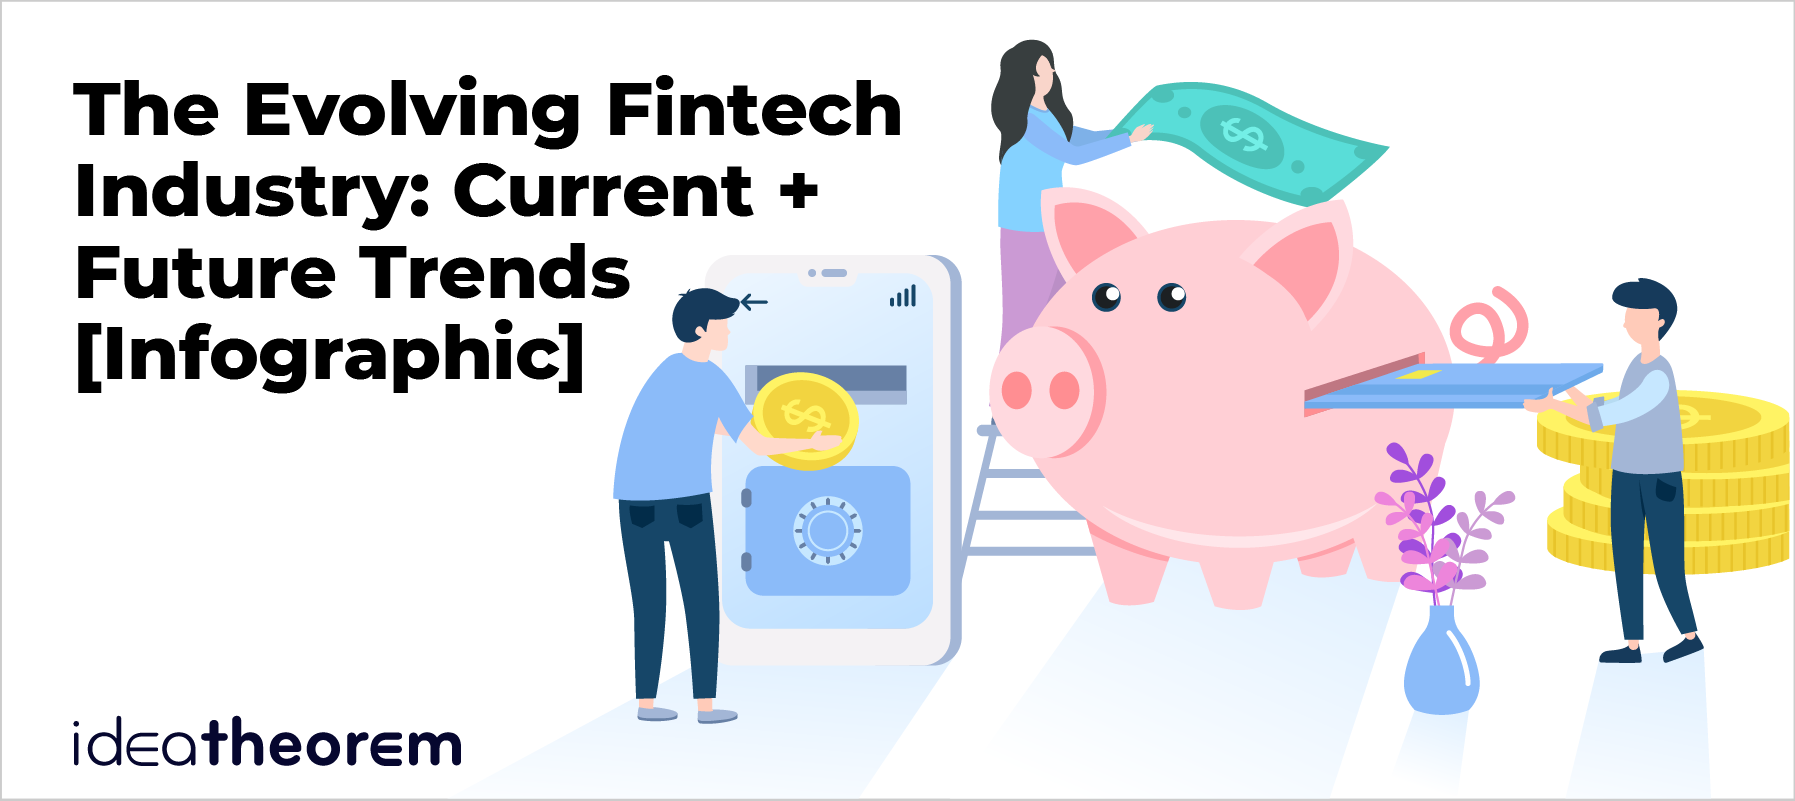 The Evolving Fintech Industry: Current + Future Trends